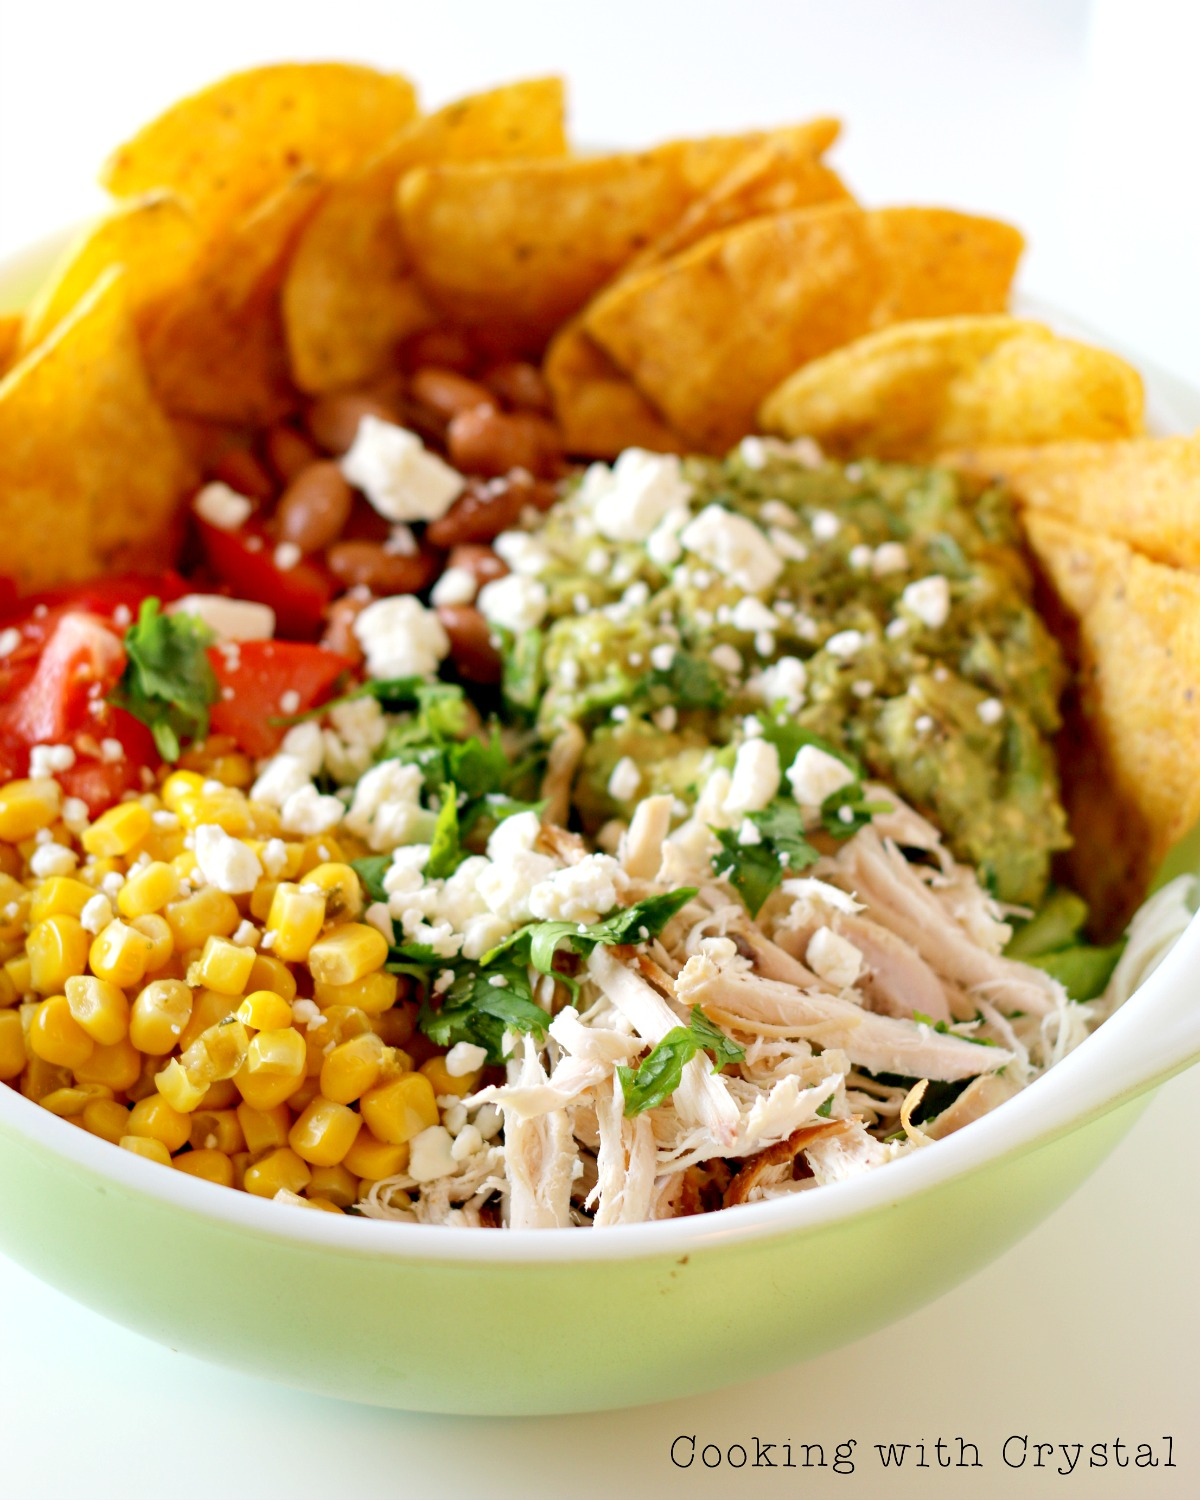 Chicken Taco Salad - by Cooking with Crystal for The Weary Chef